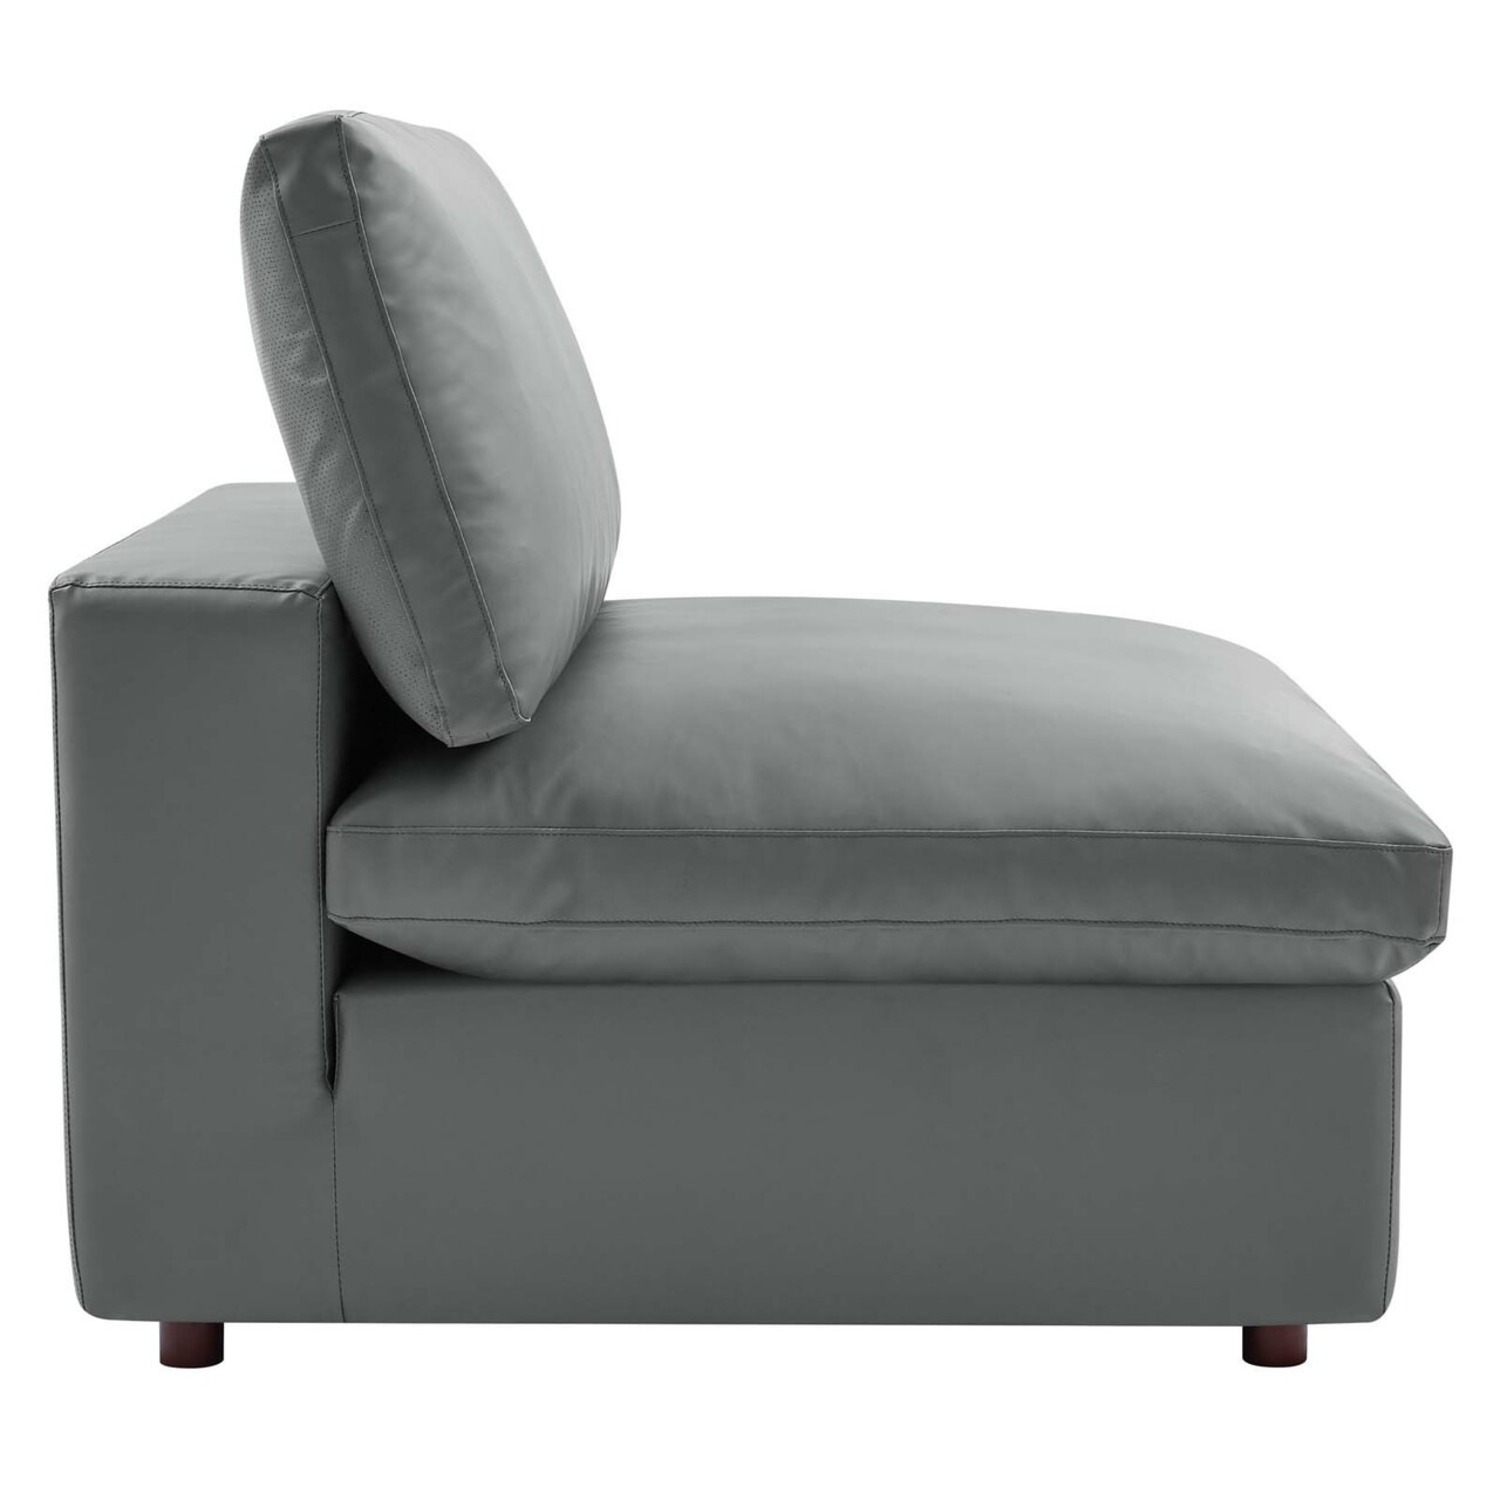 8-Piece Sectional Sofa In Gray Vegan Leather - image-3